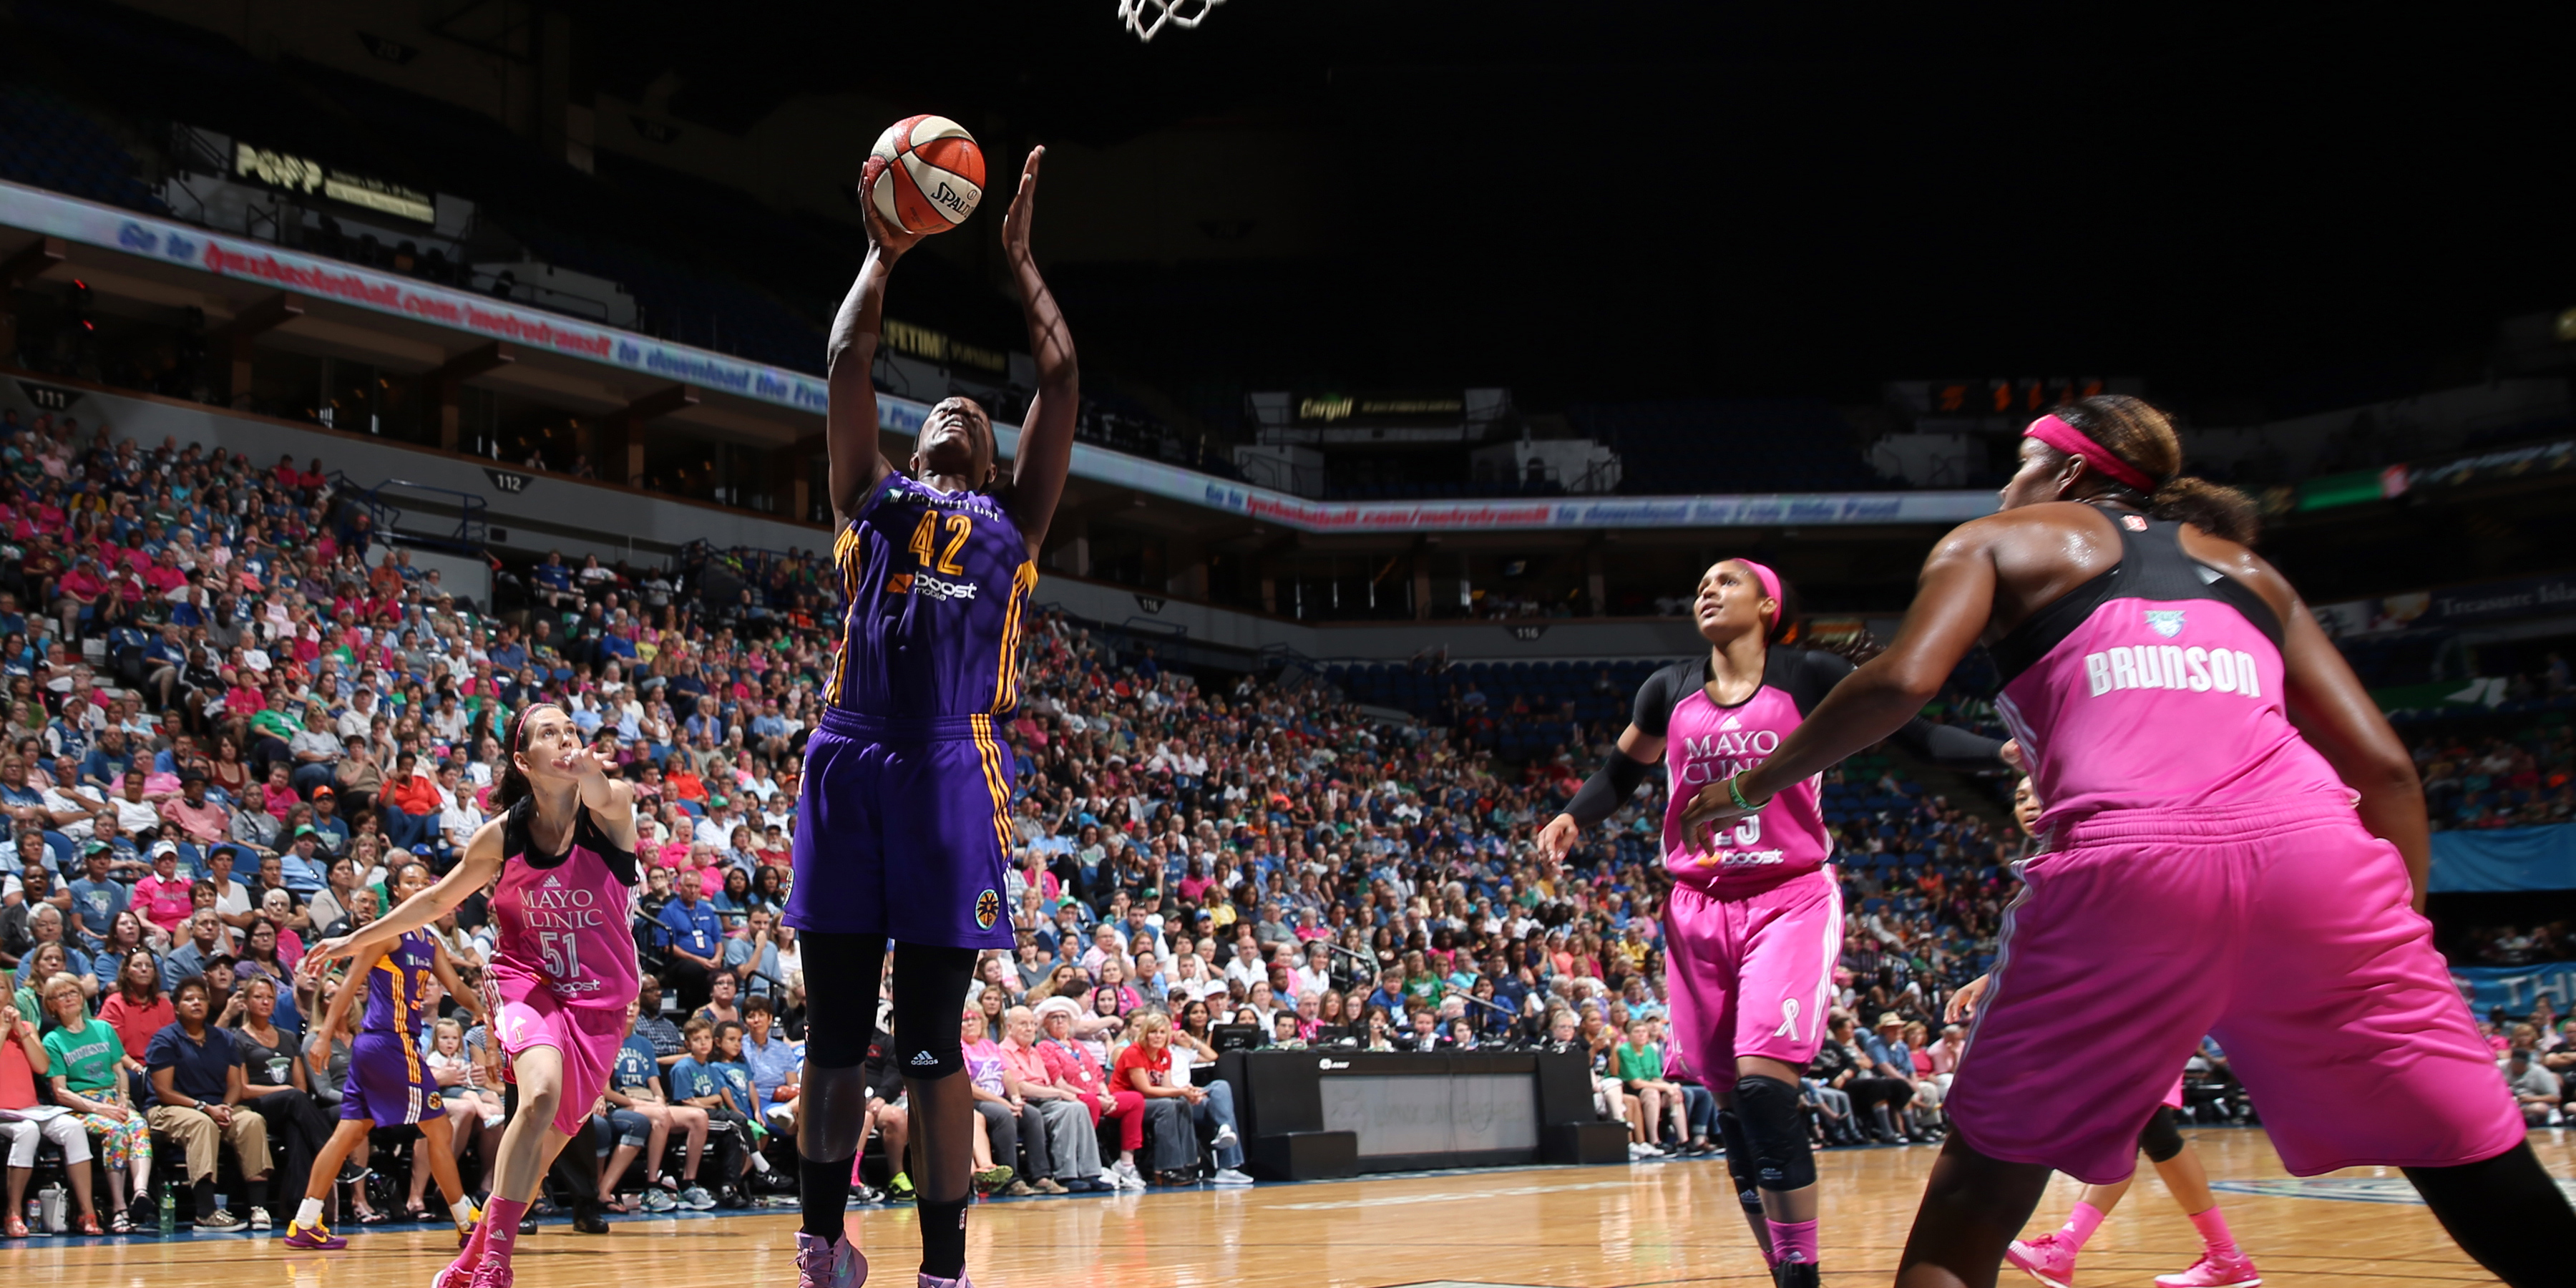 Sparks center Jantel Lavender had given the Lynx fits all season long and their August 9 meeting was no exception. Lavender finished with 13 points and eight rebounds. It was the only game against the Lynx in he regular season in which Lavender did not notch a double-double.